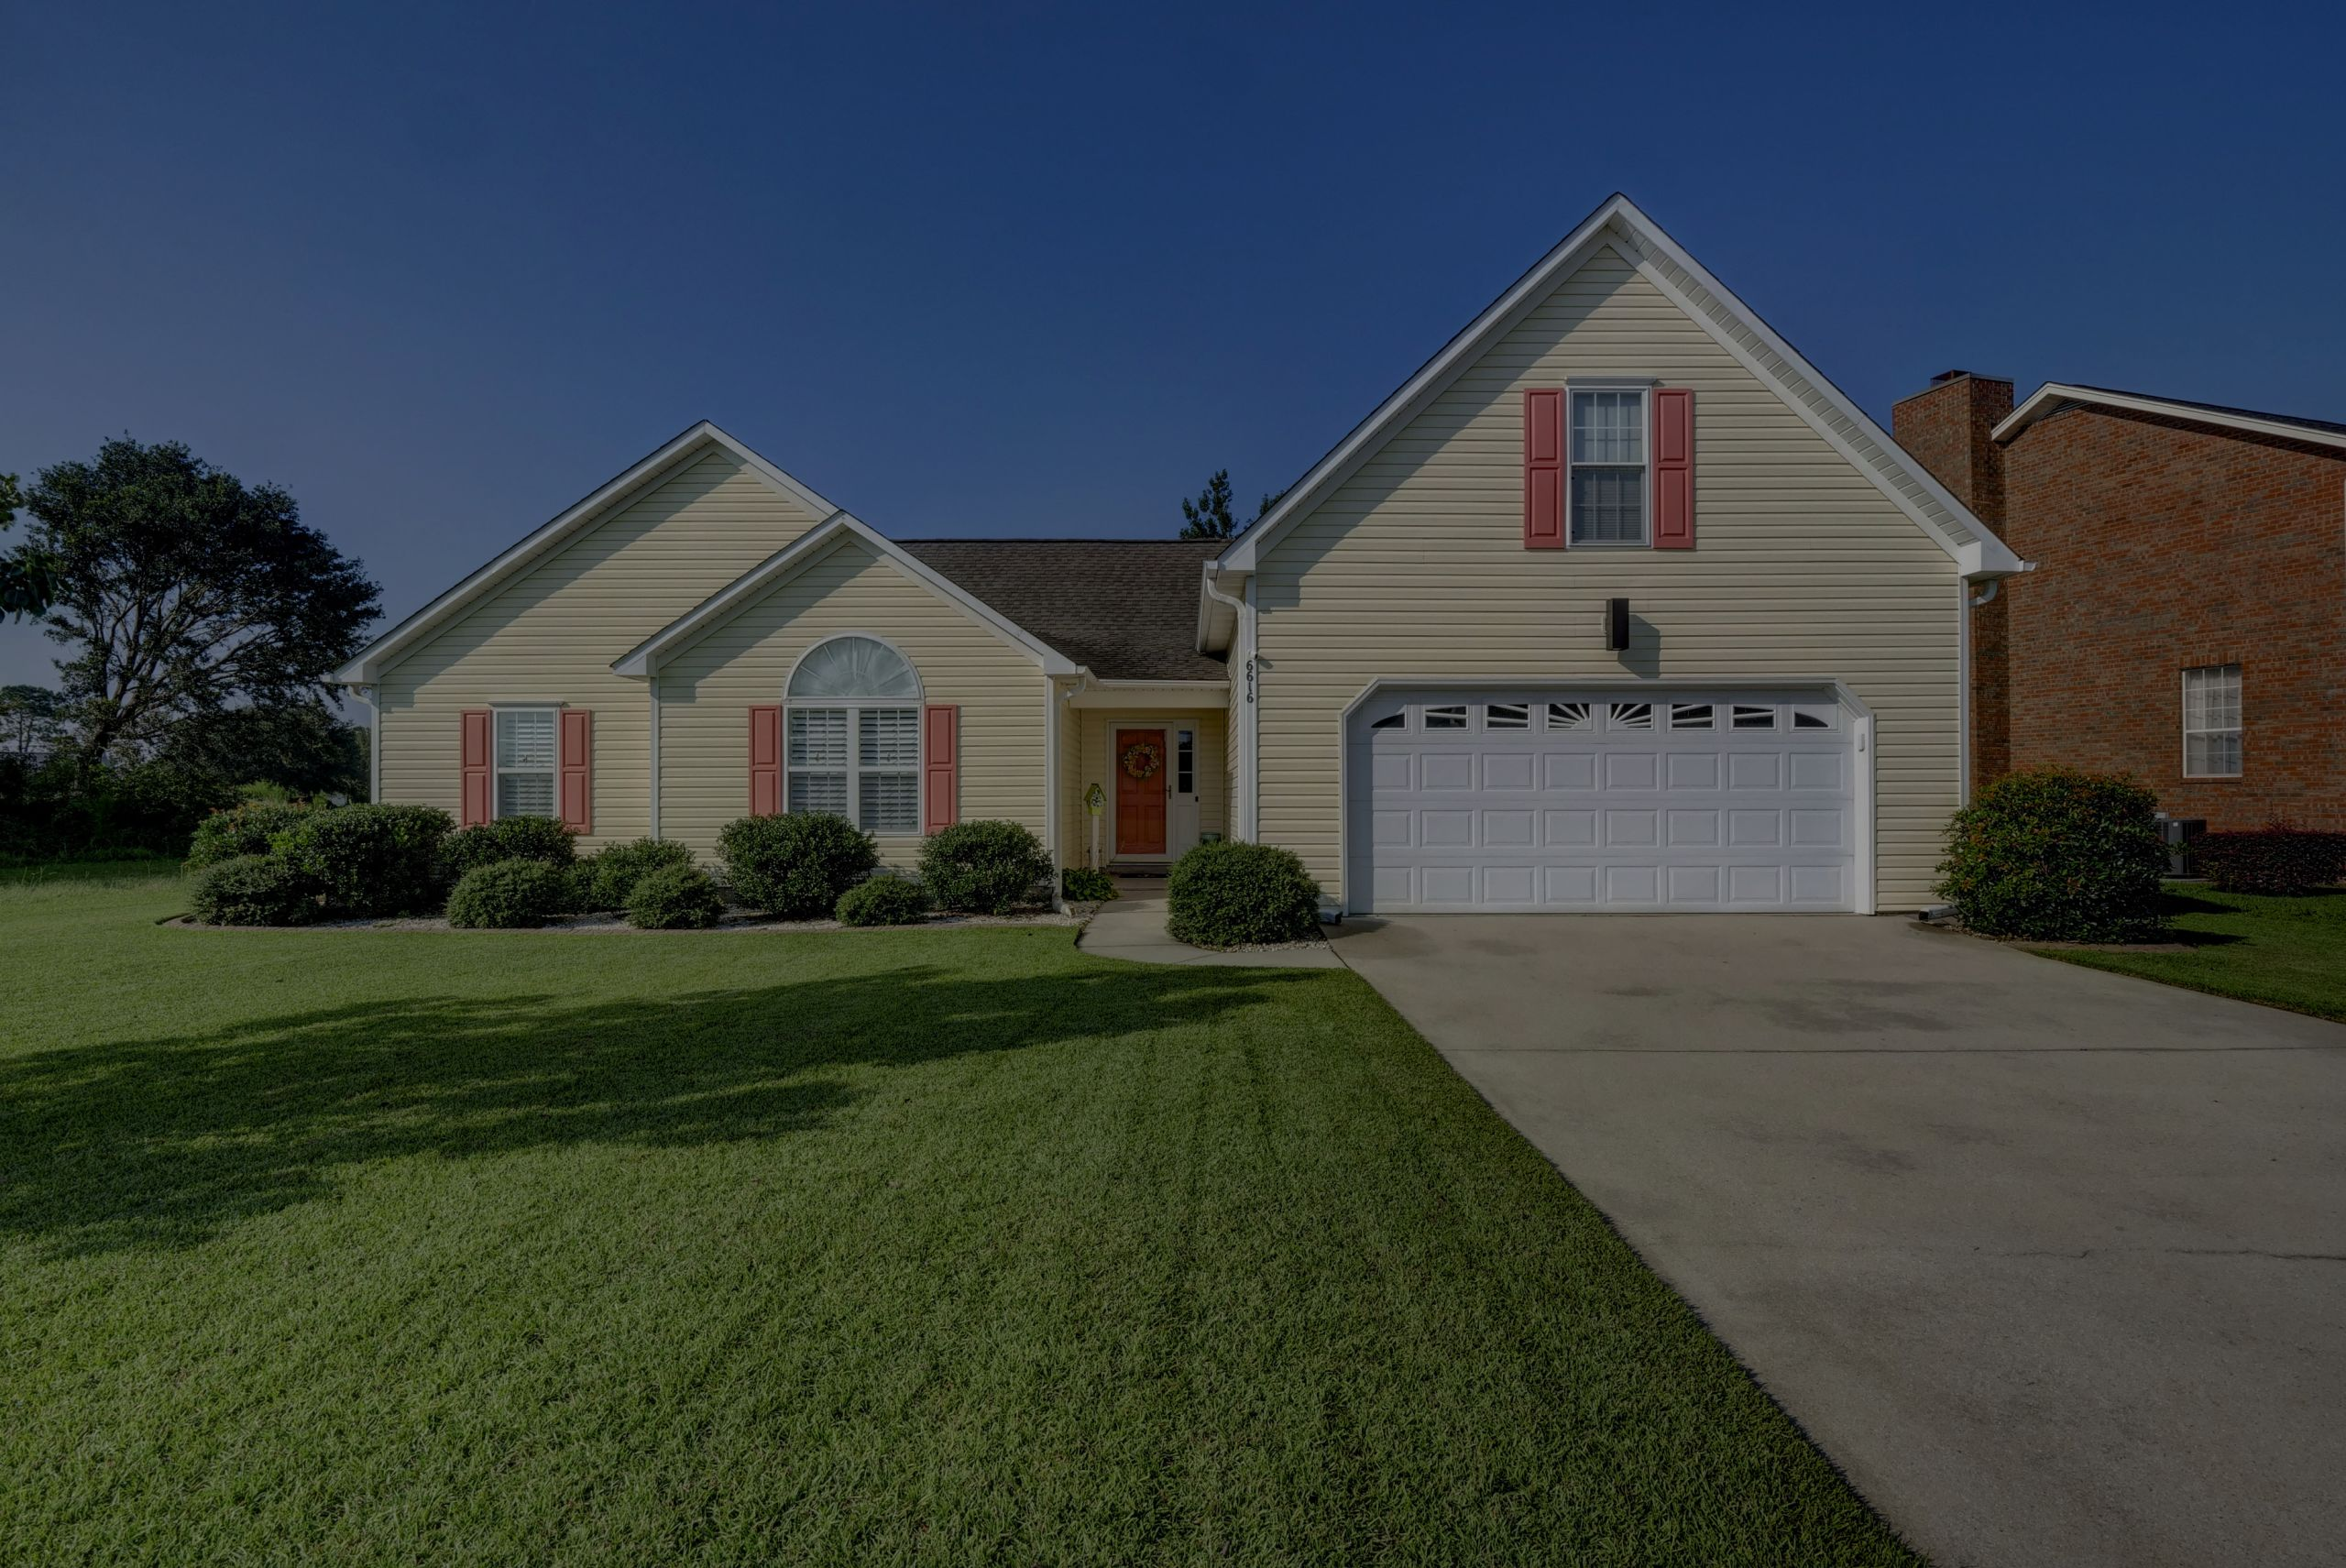 6616 Newbury Way, Wilmington, NC 28411 | Reignited Real Estate